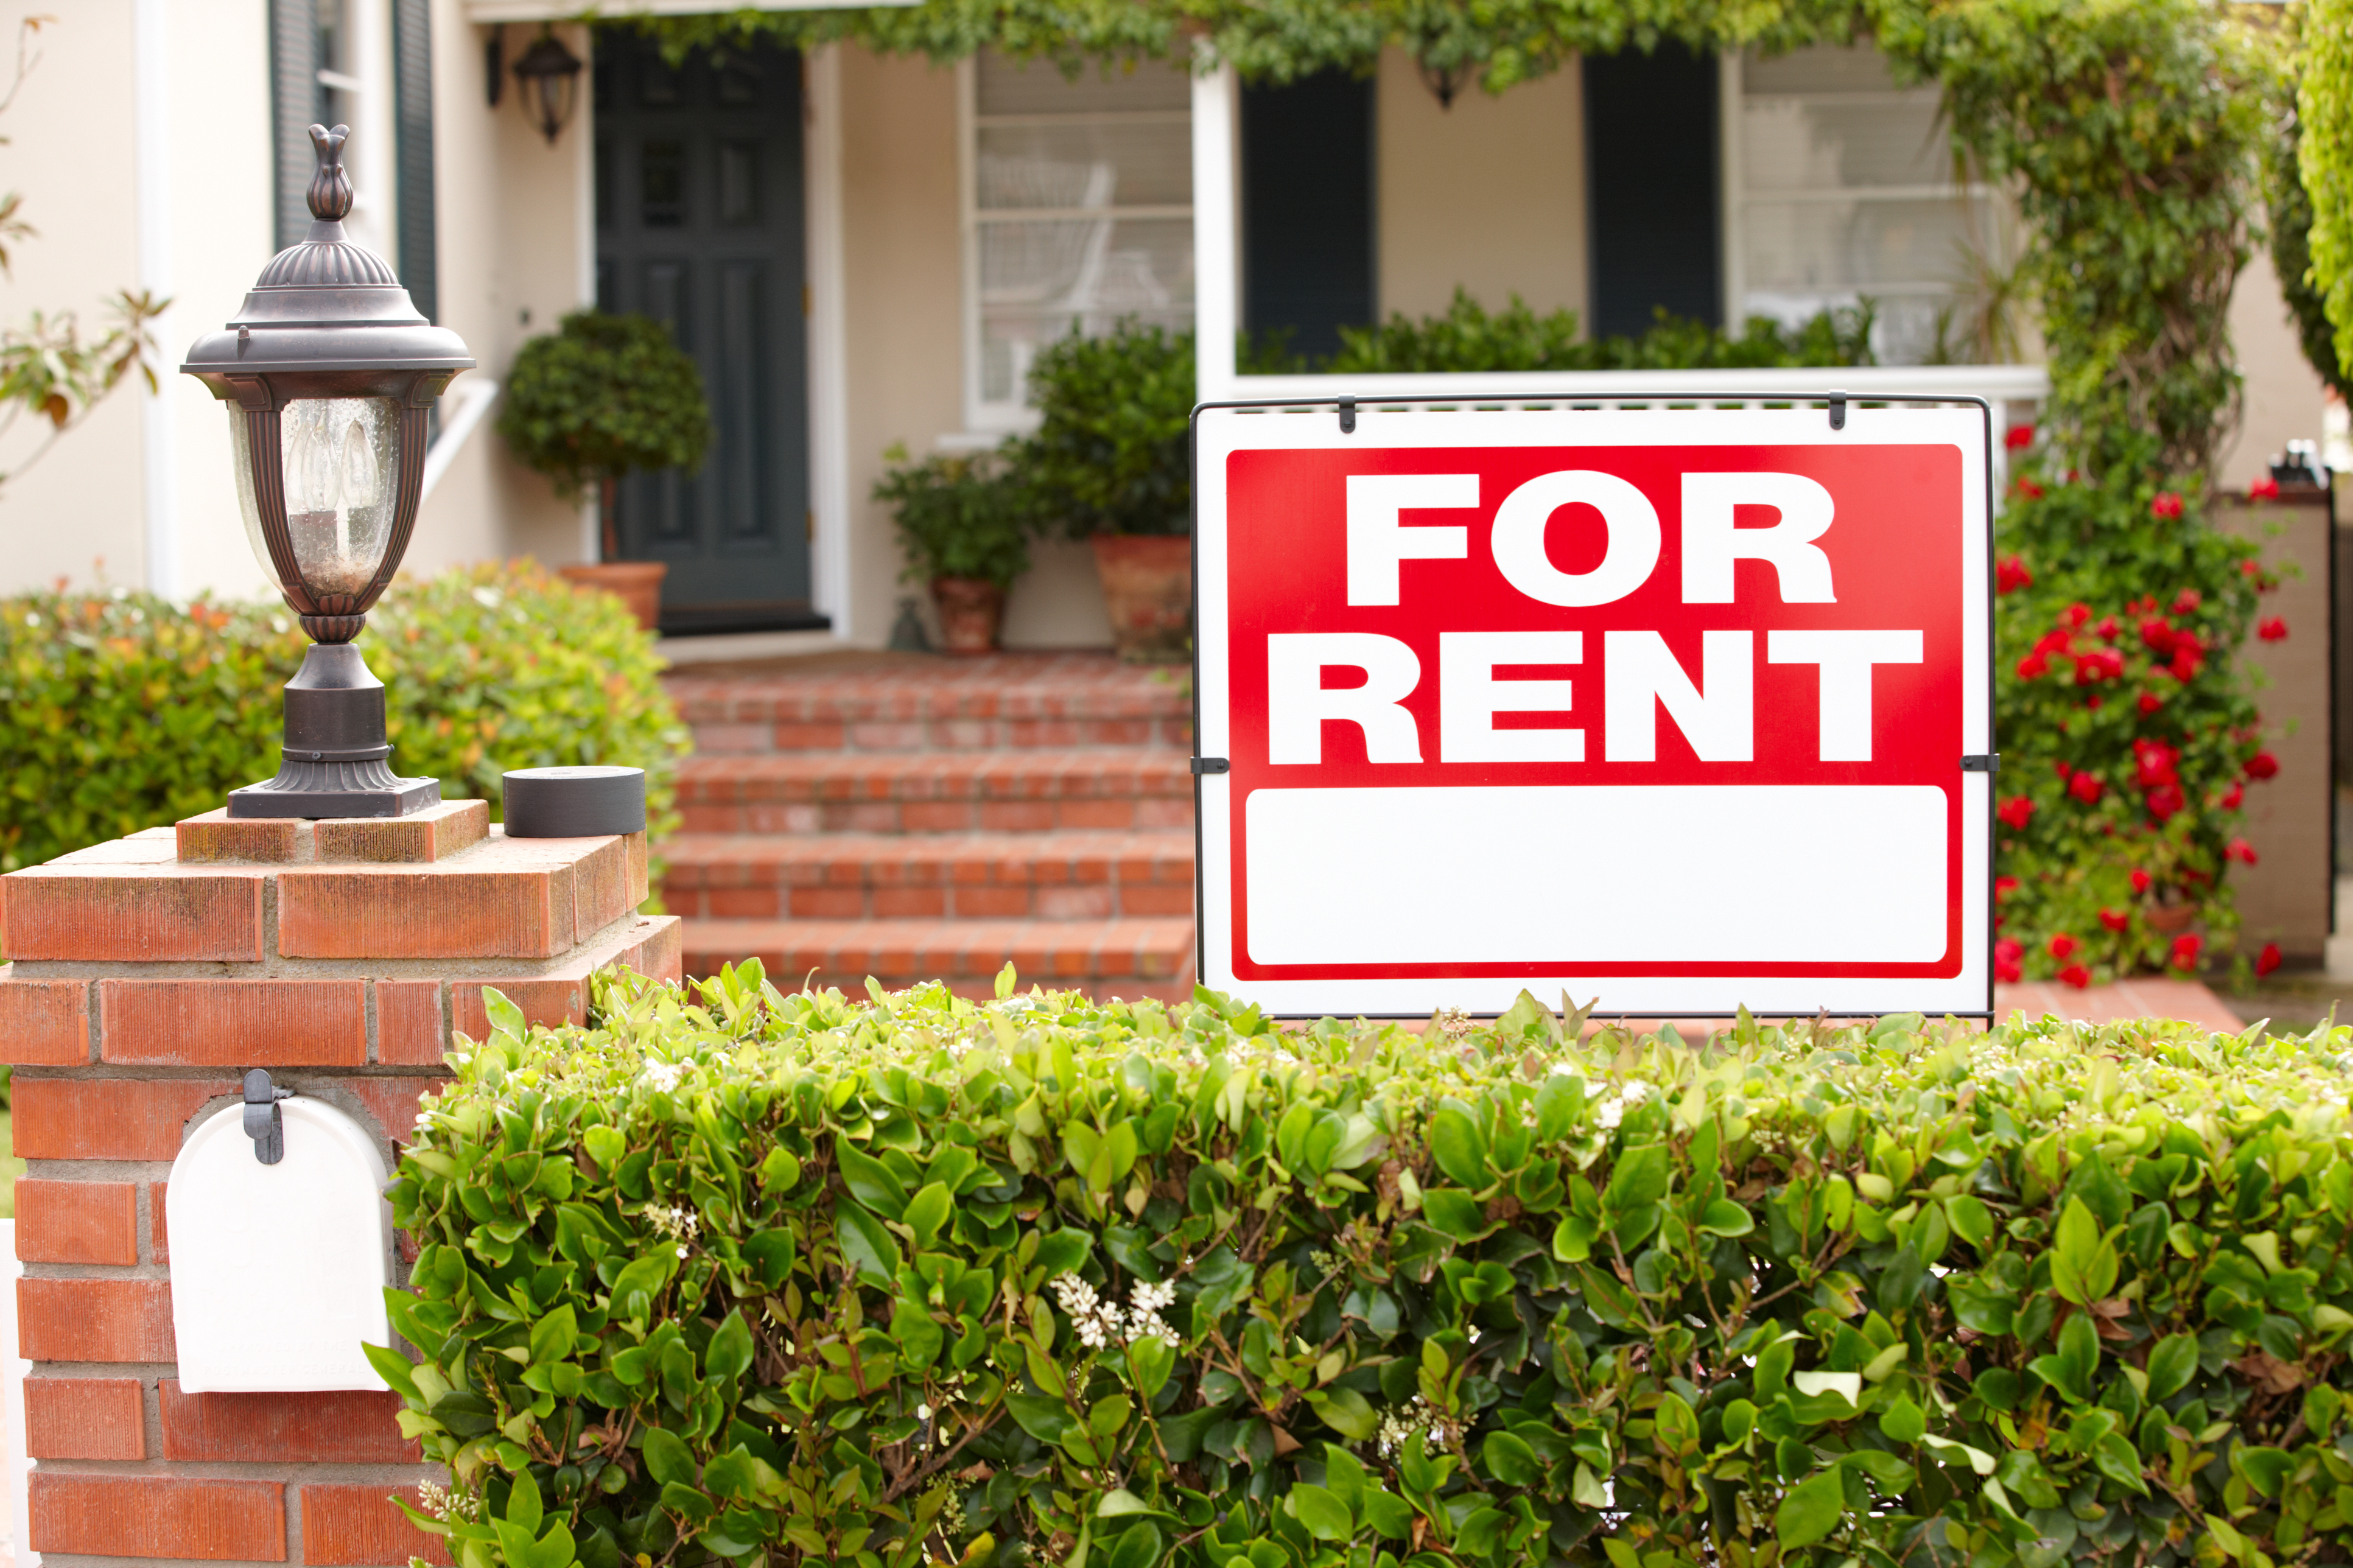 Additional Insurance to Protect Rental Property Owners and Airbnb Lodging Providers on avanteinsurance.com